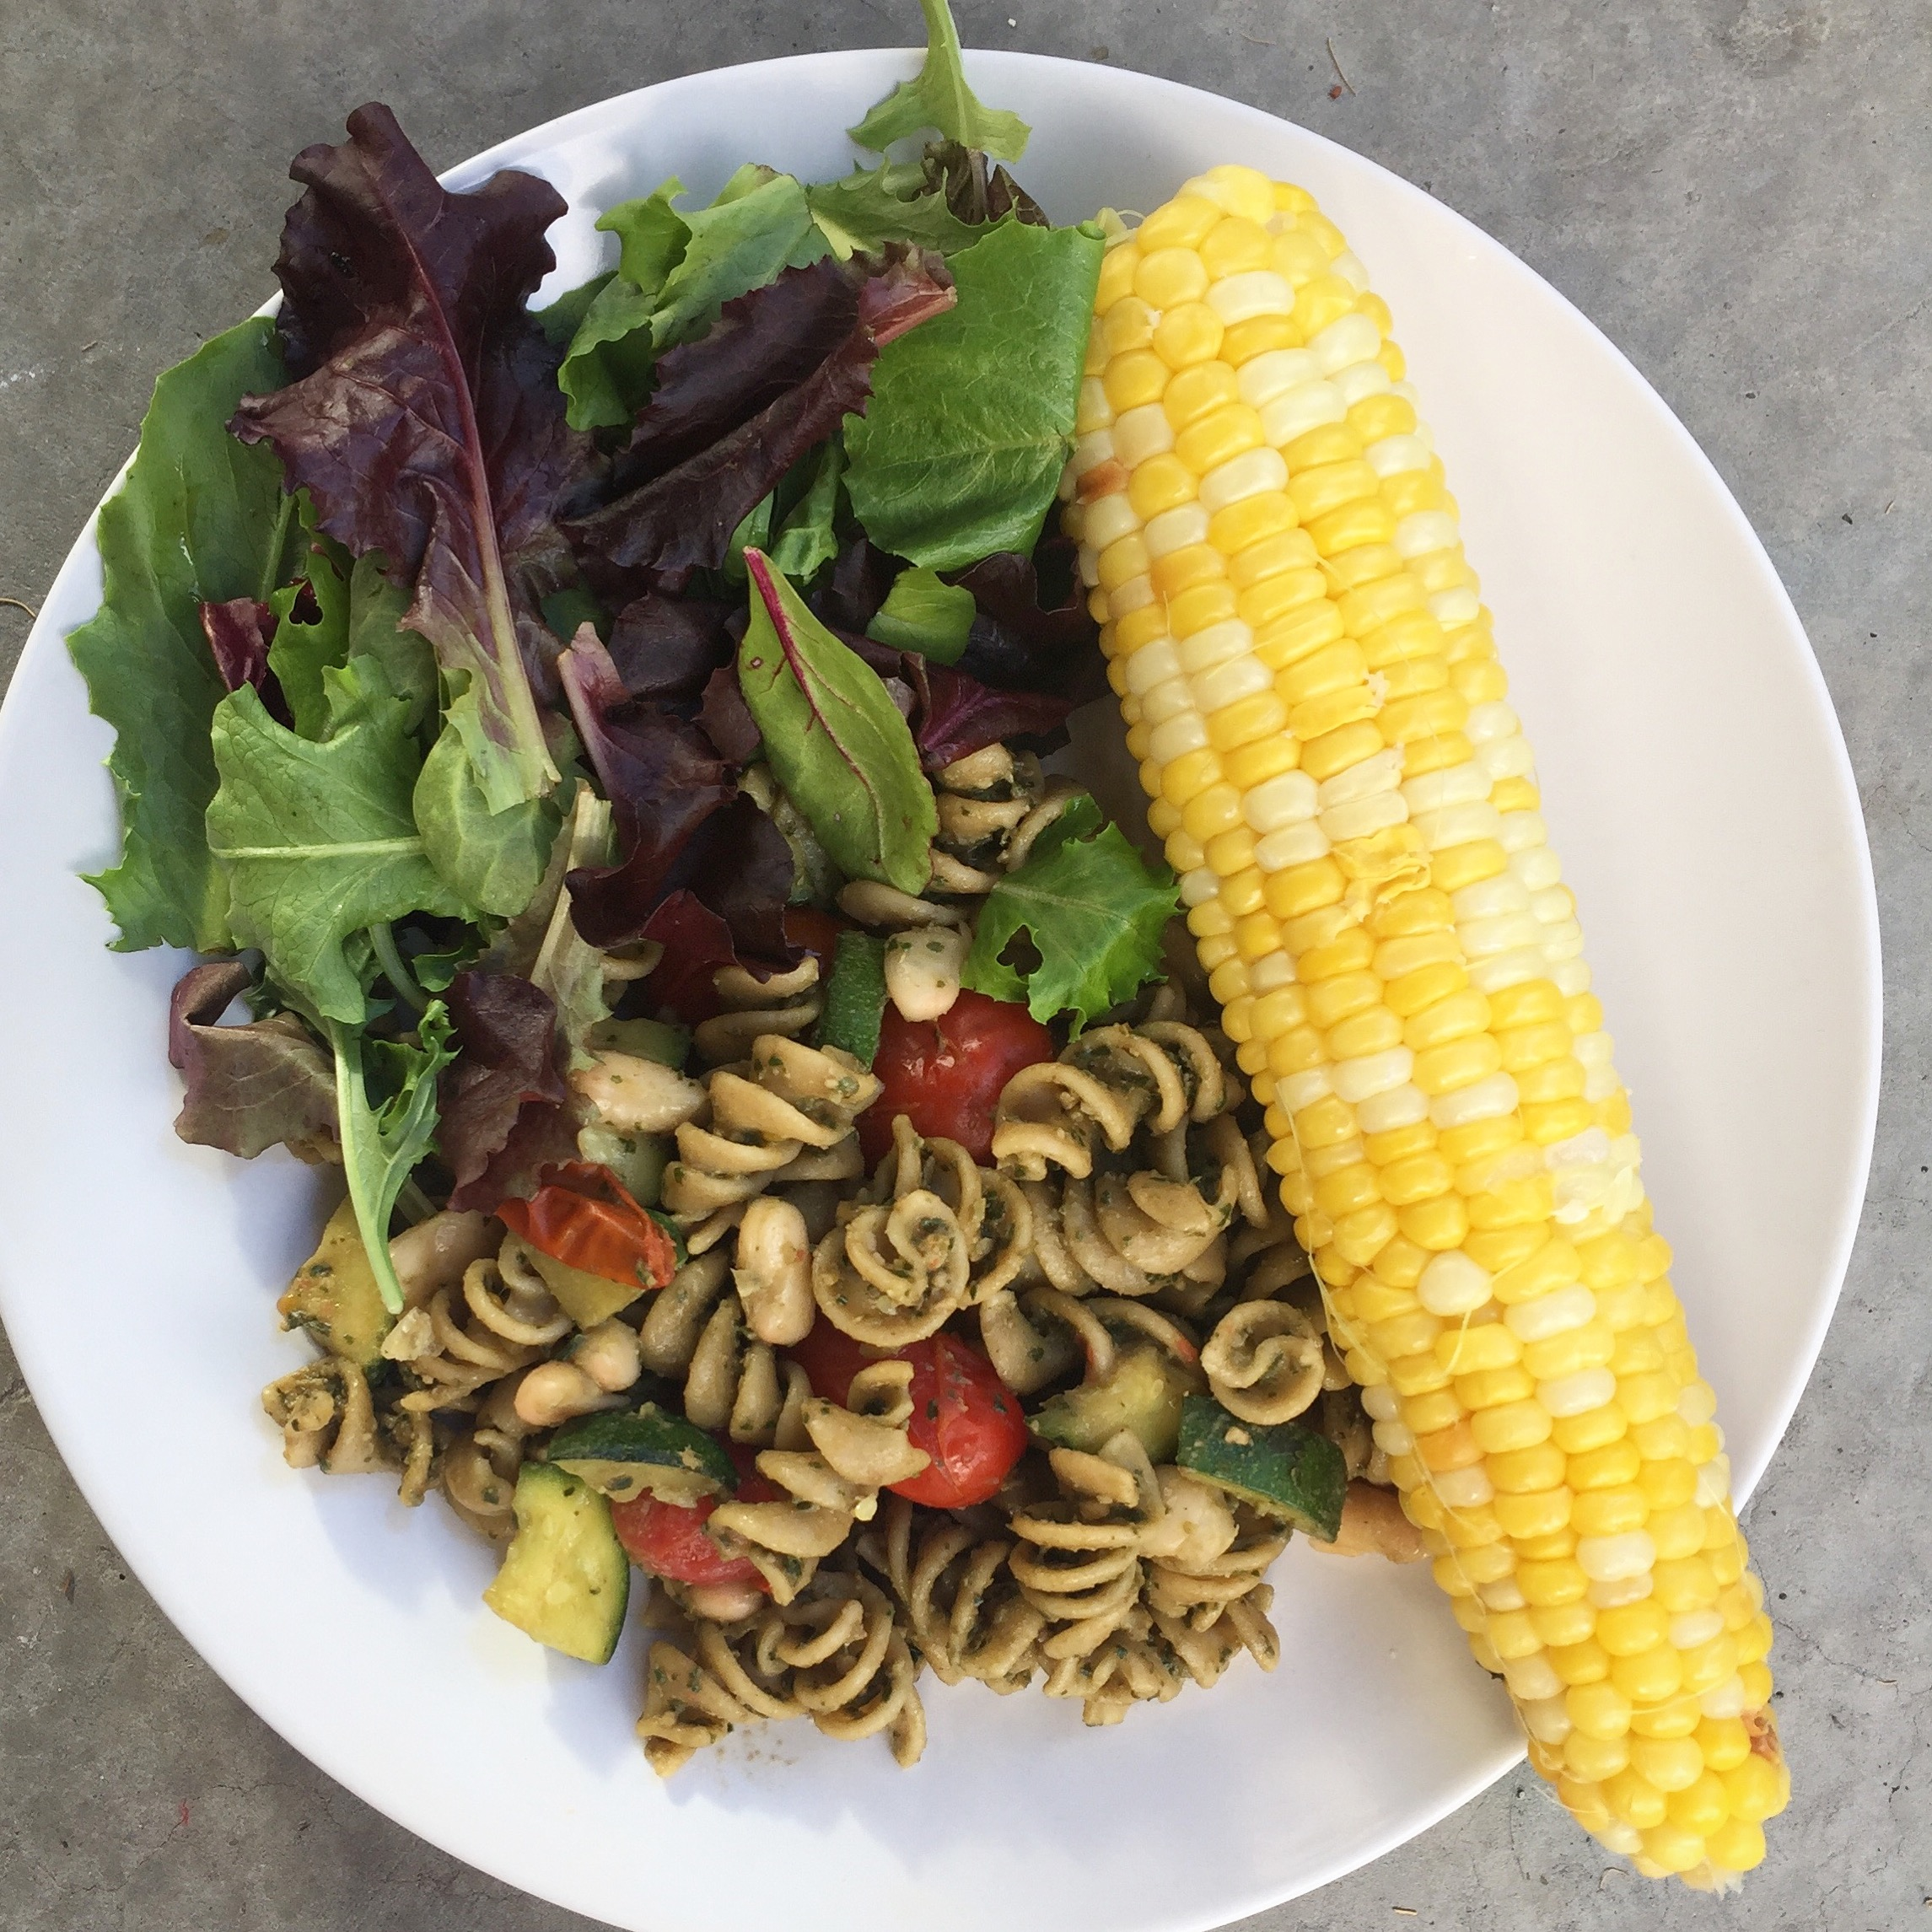 Pesto on kamut rotini with white beans and tomatoes; in-season corn; mixed greens